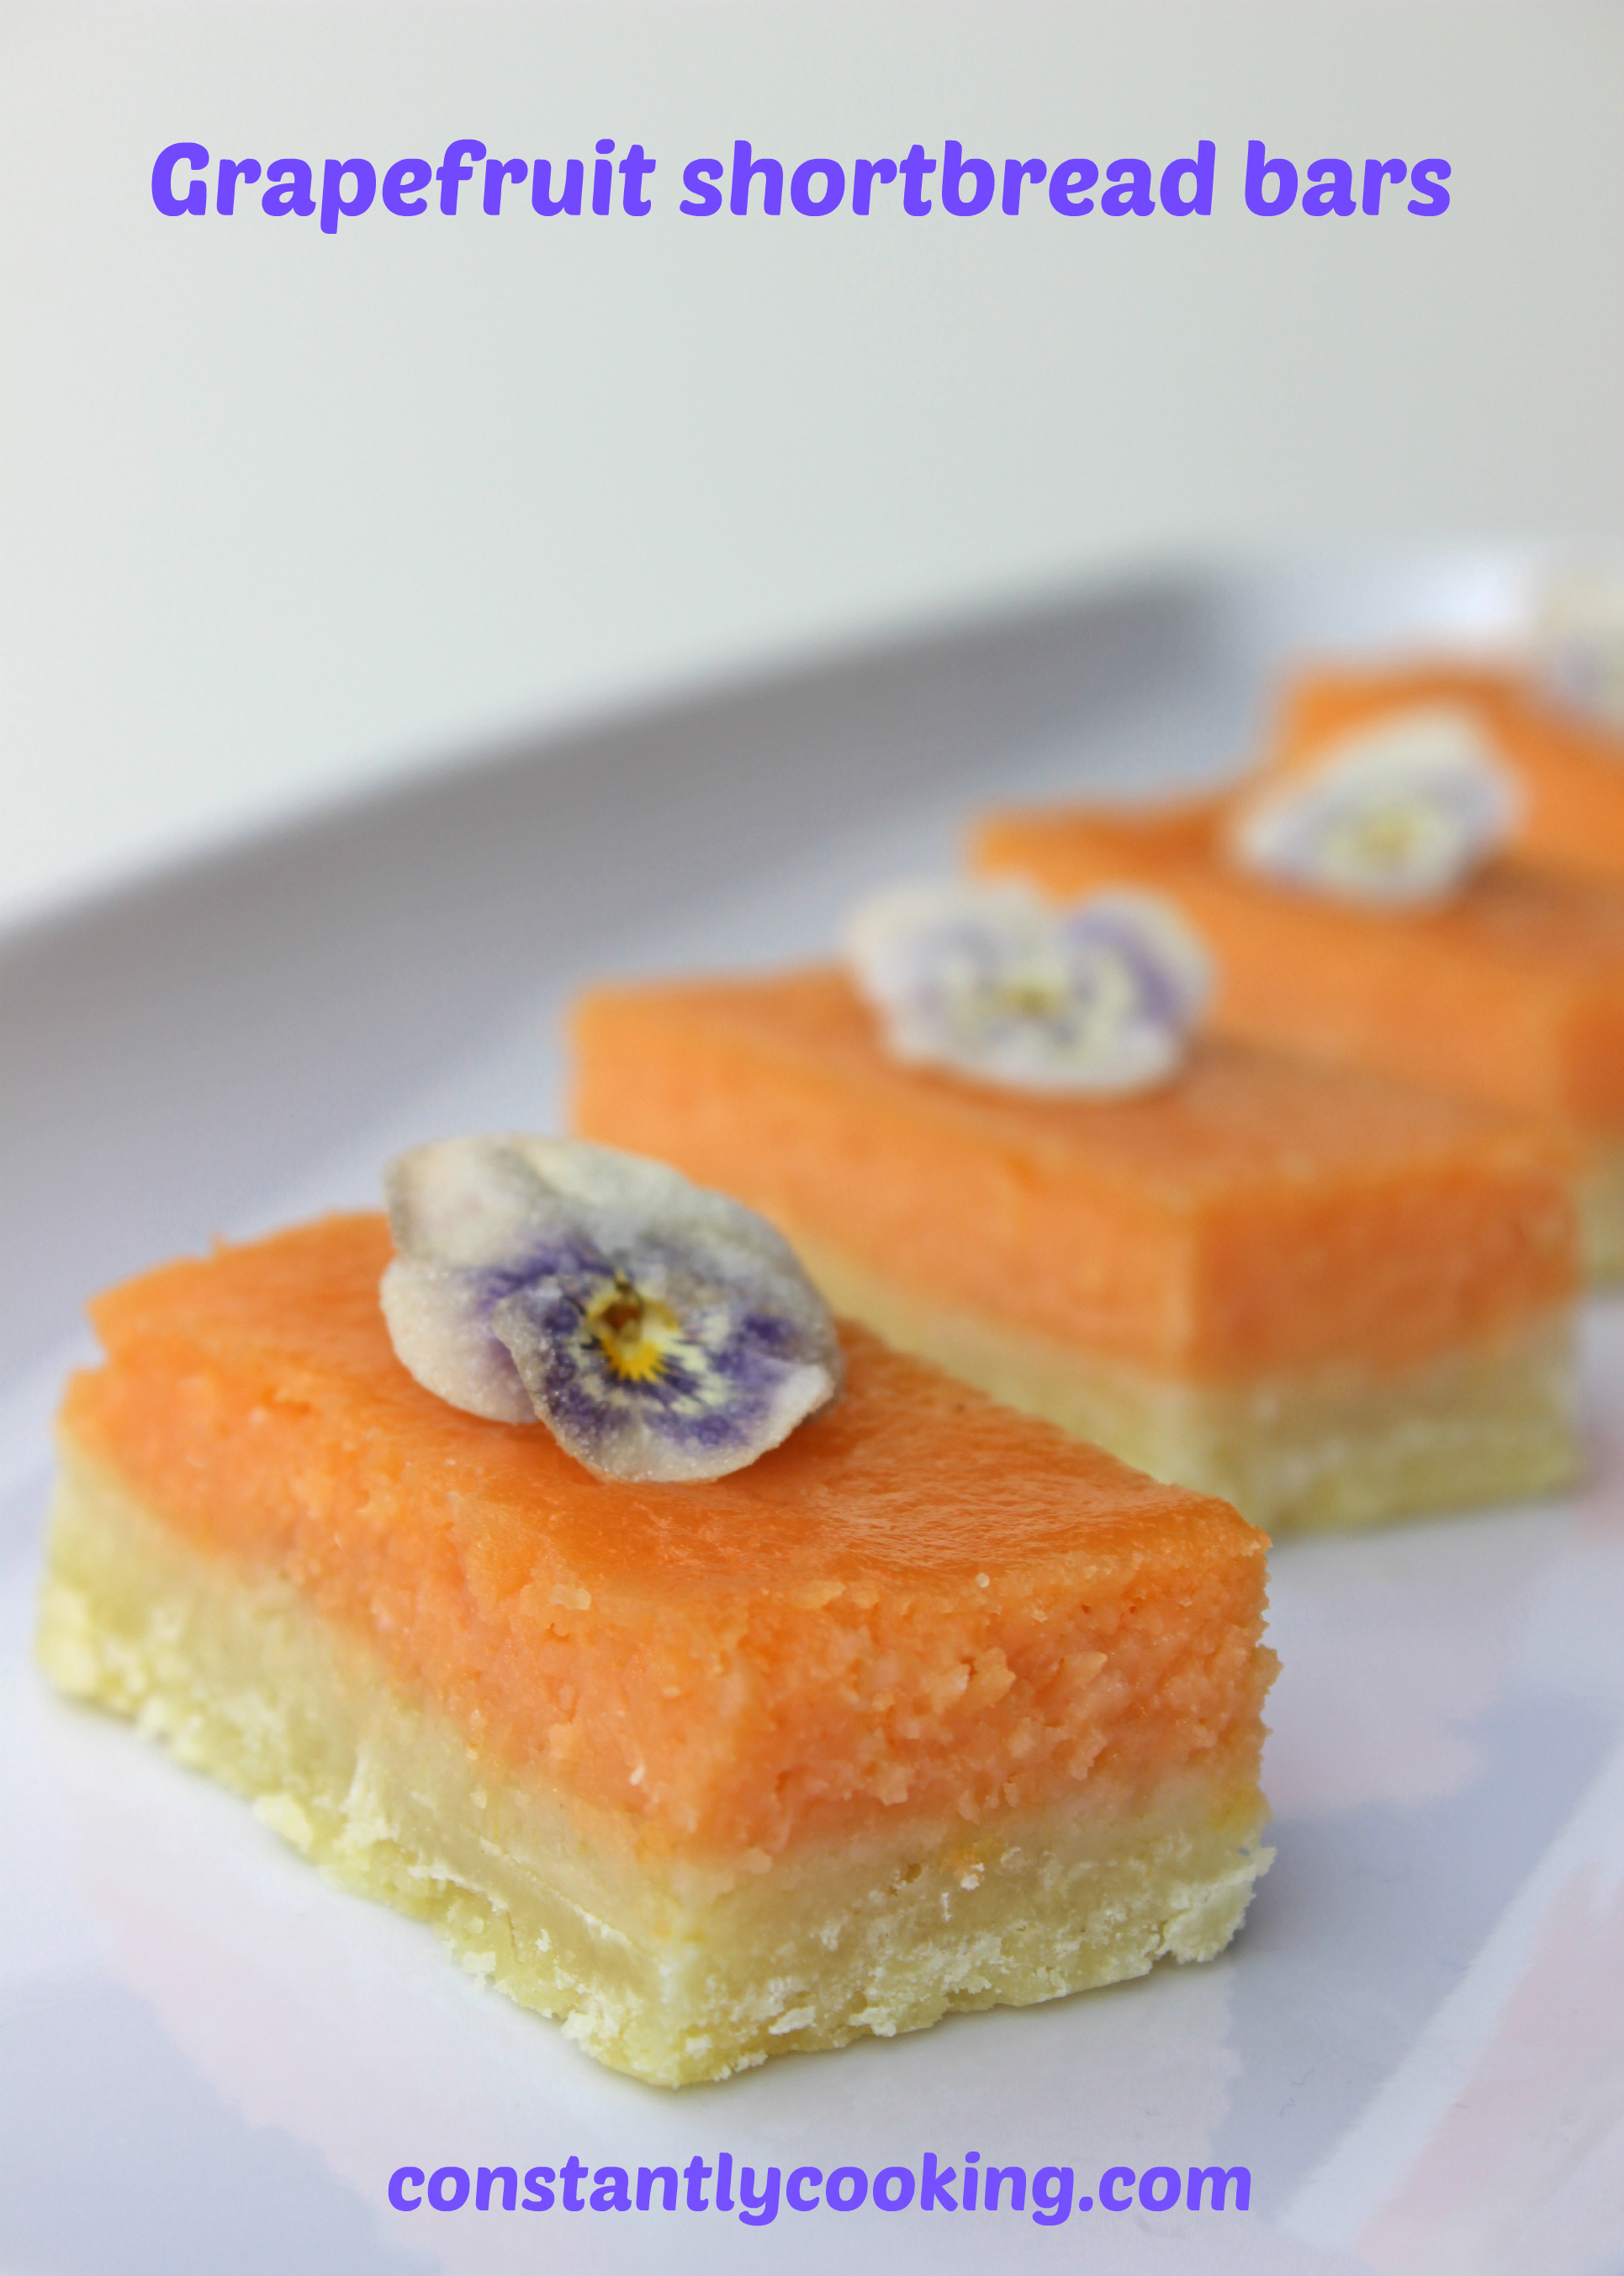 Grapefruit and vanilla curd on a shortbread base made for a truly delicious dessert